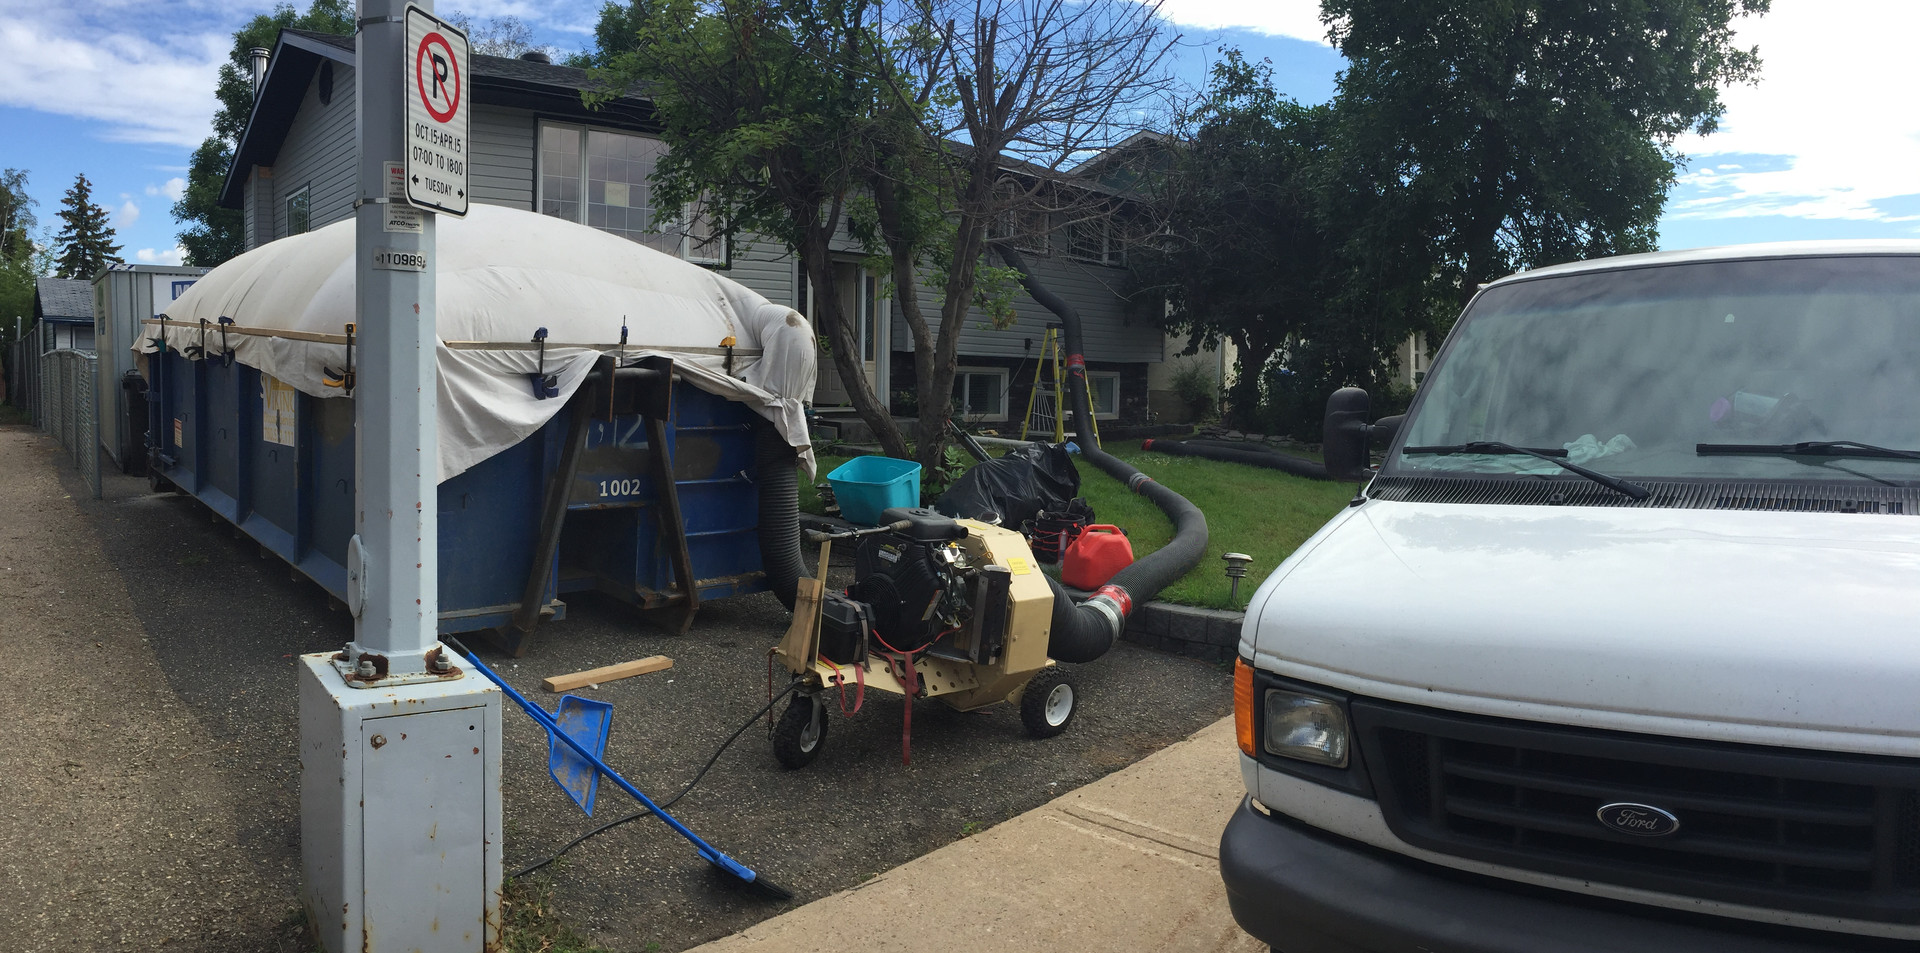 removal of contaminated attic insulation, straight from the attic to the garbage bin.